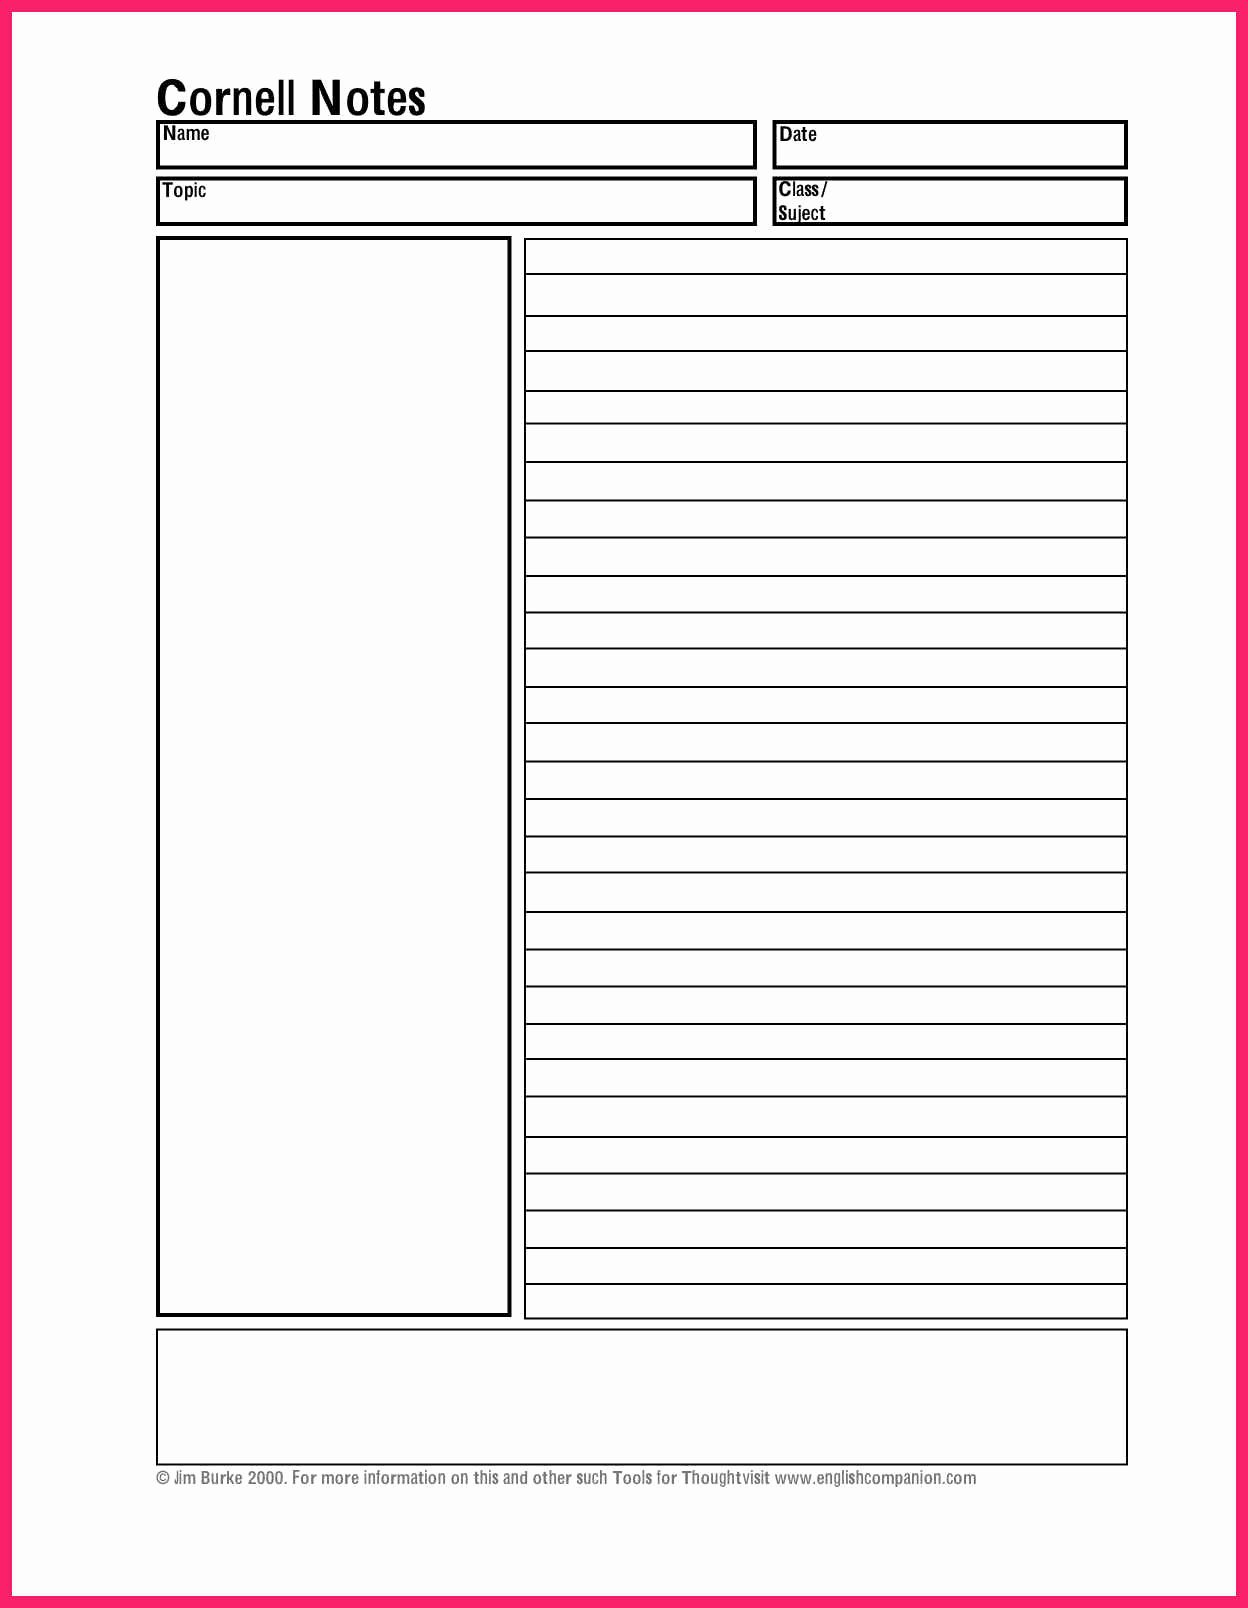 Cornell Notes Template Pdf Best Of Cornell Notes Template Pdf